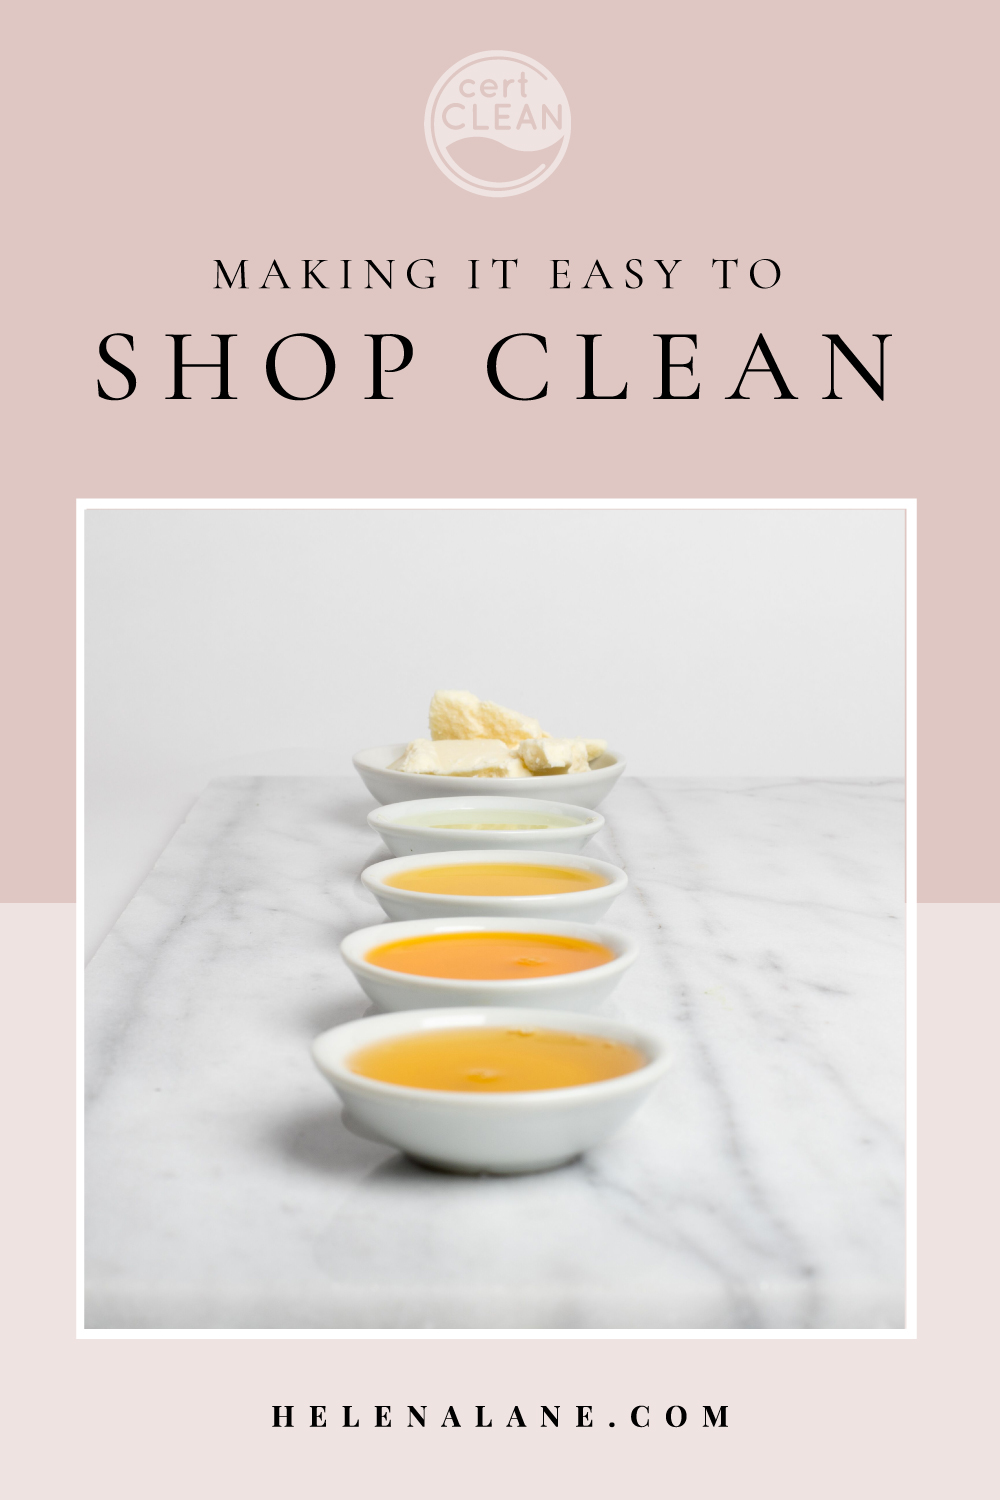 Shop Clean Cosmetics Cert Clean Helena Lane